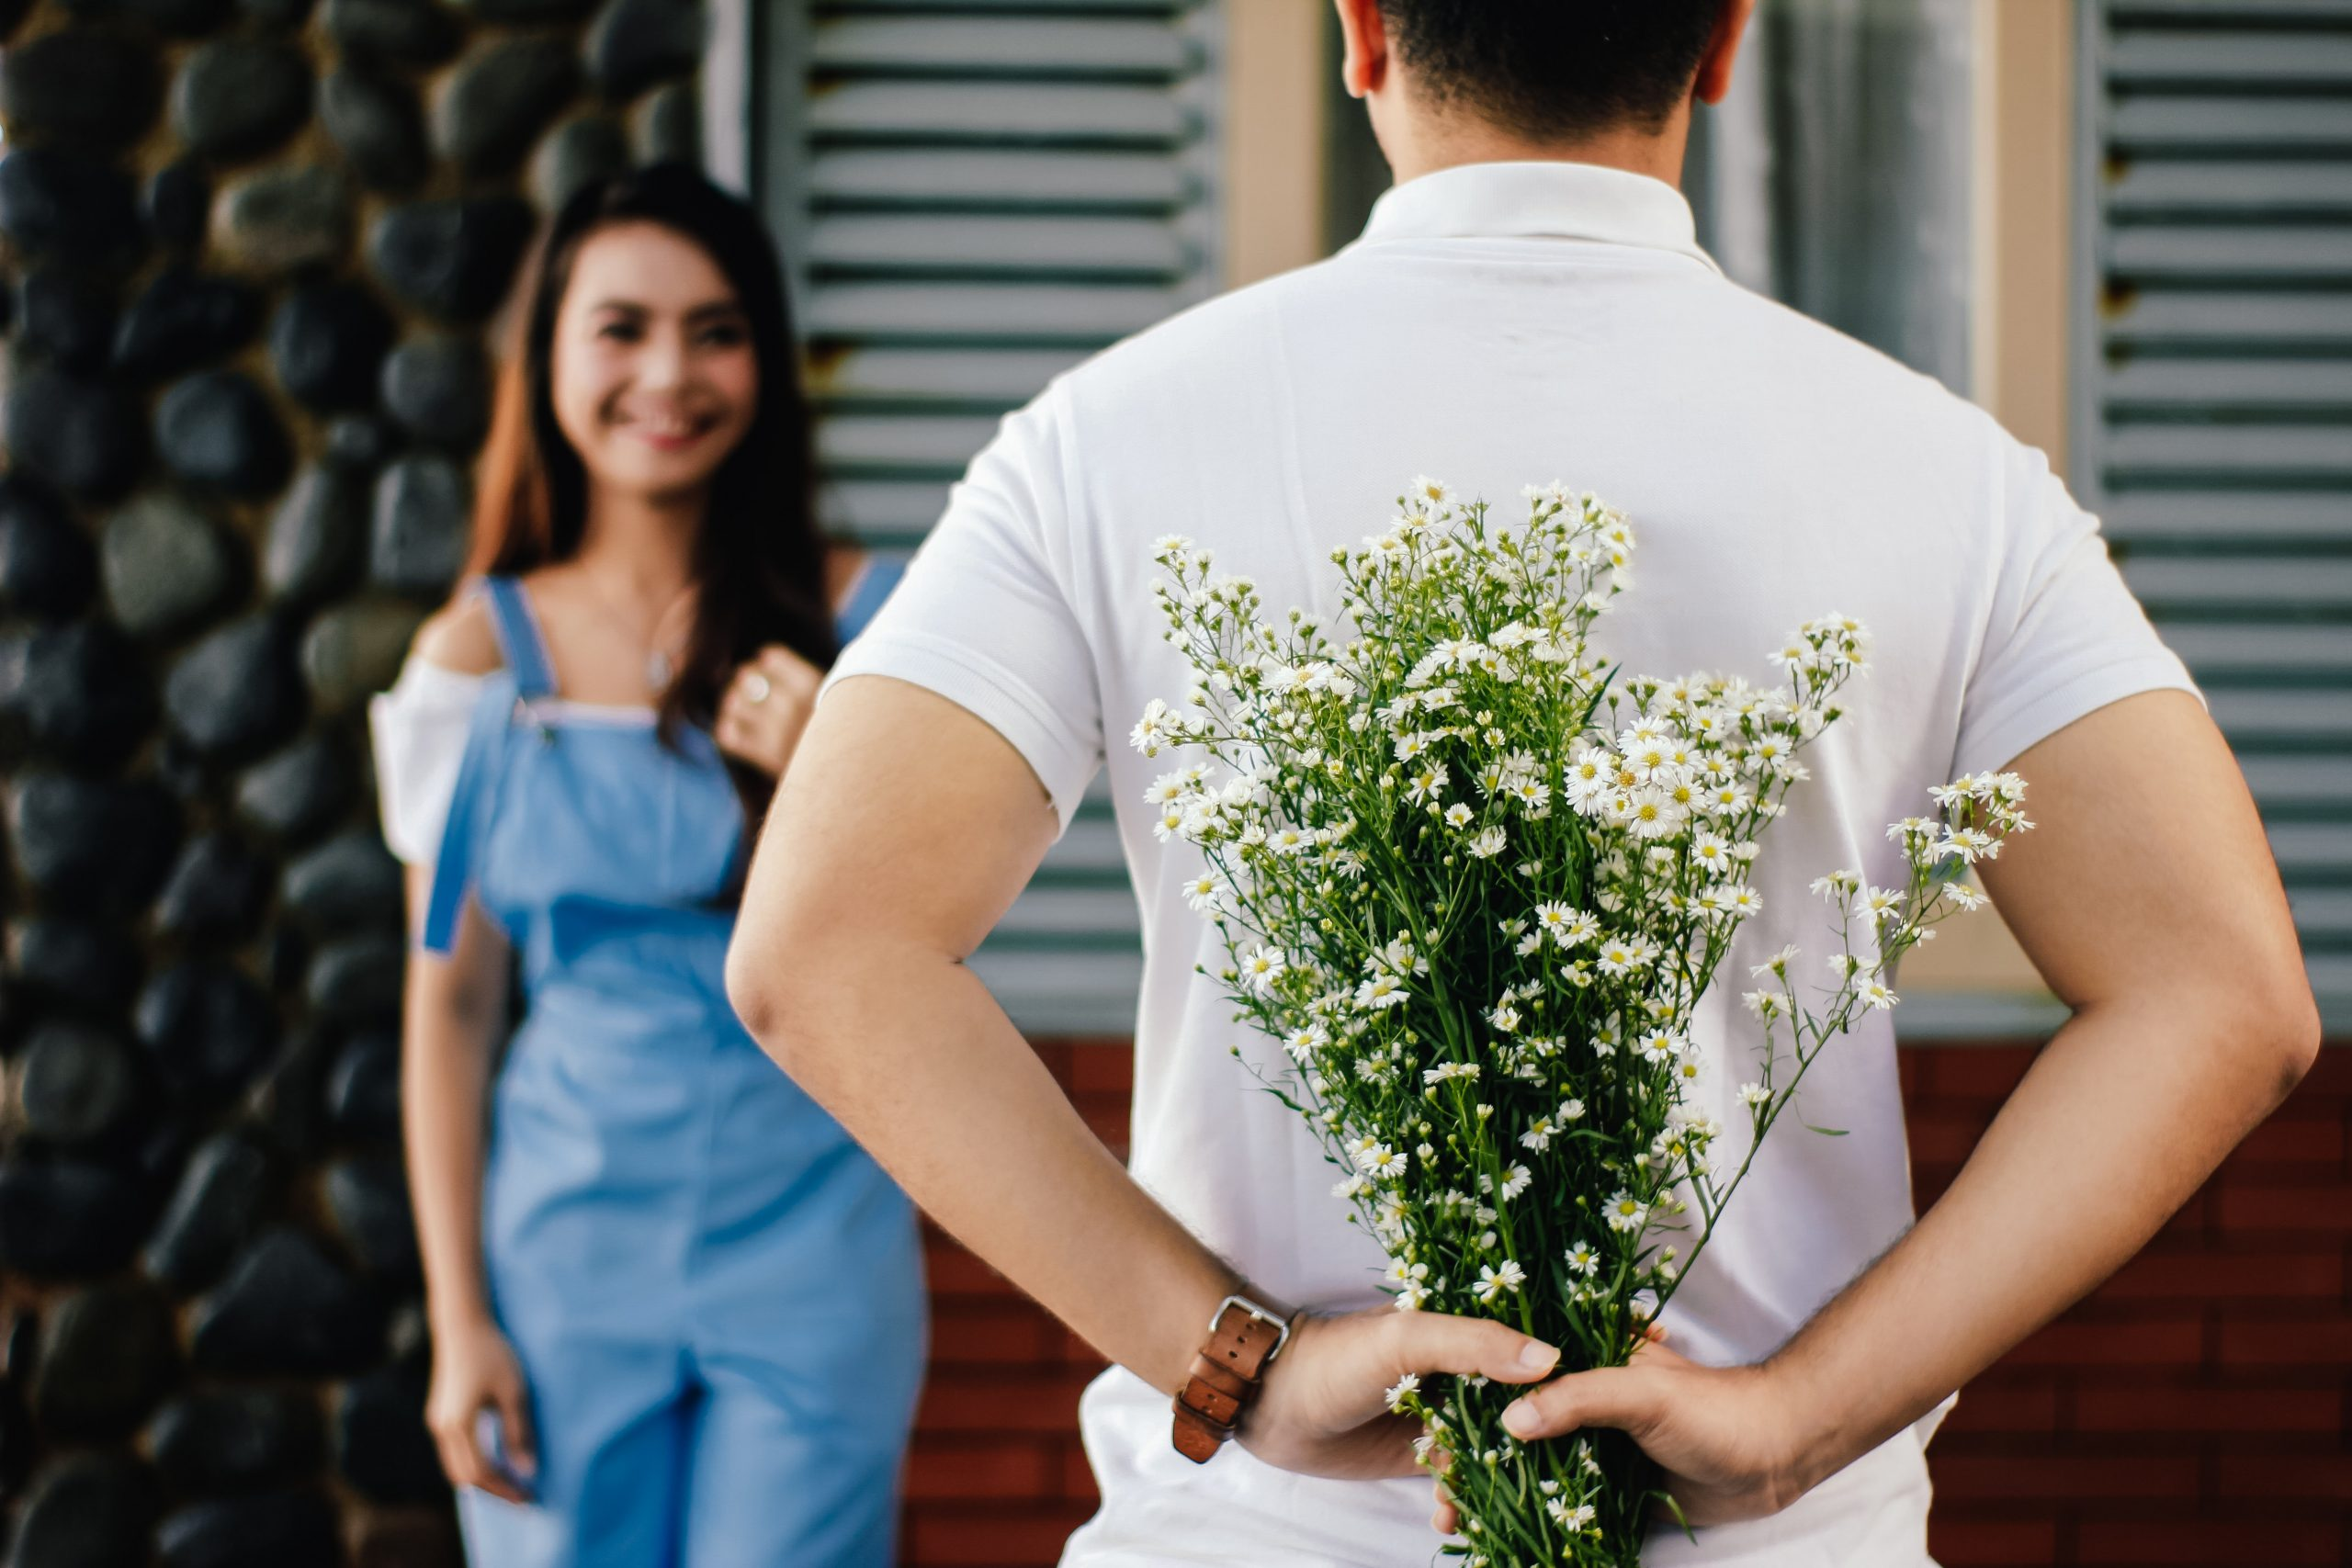 man holding flowers behind his back to surprise his woman